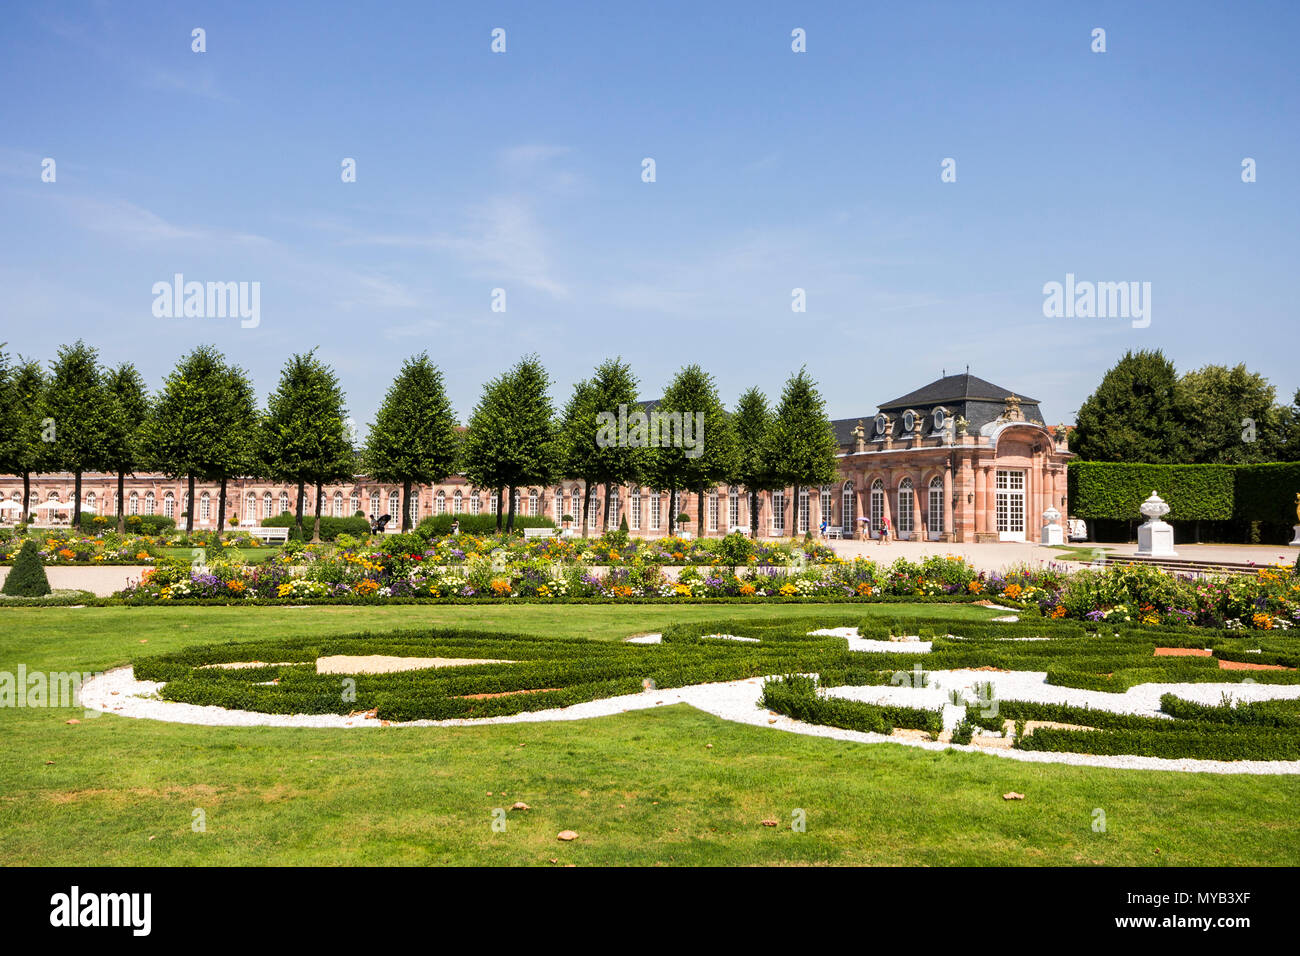 Schwetzingen, Germany. Gardens of the Schwetzingen Palace (Schloss Schwetzingen), ancient summer residence of the Electors Palatine Charles III Philip - Stock Image